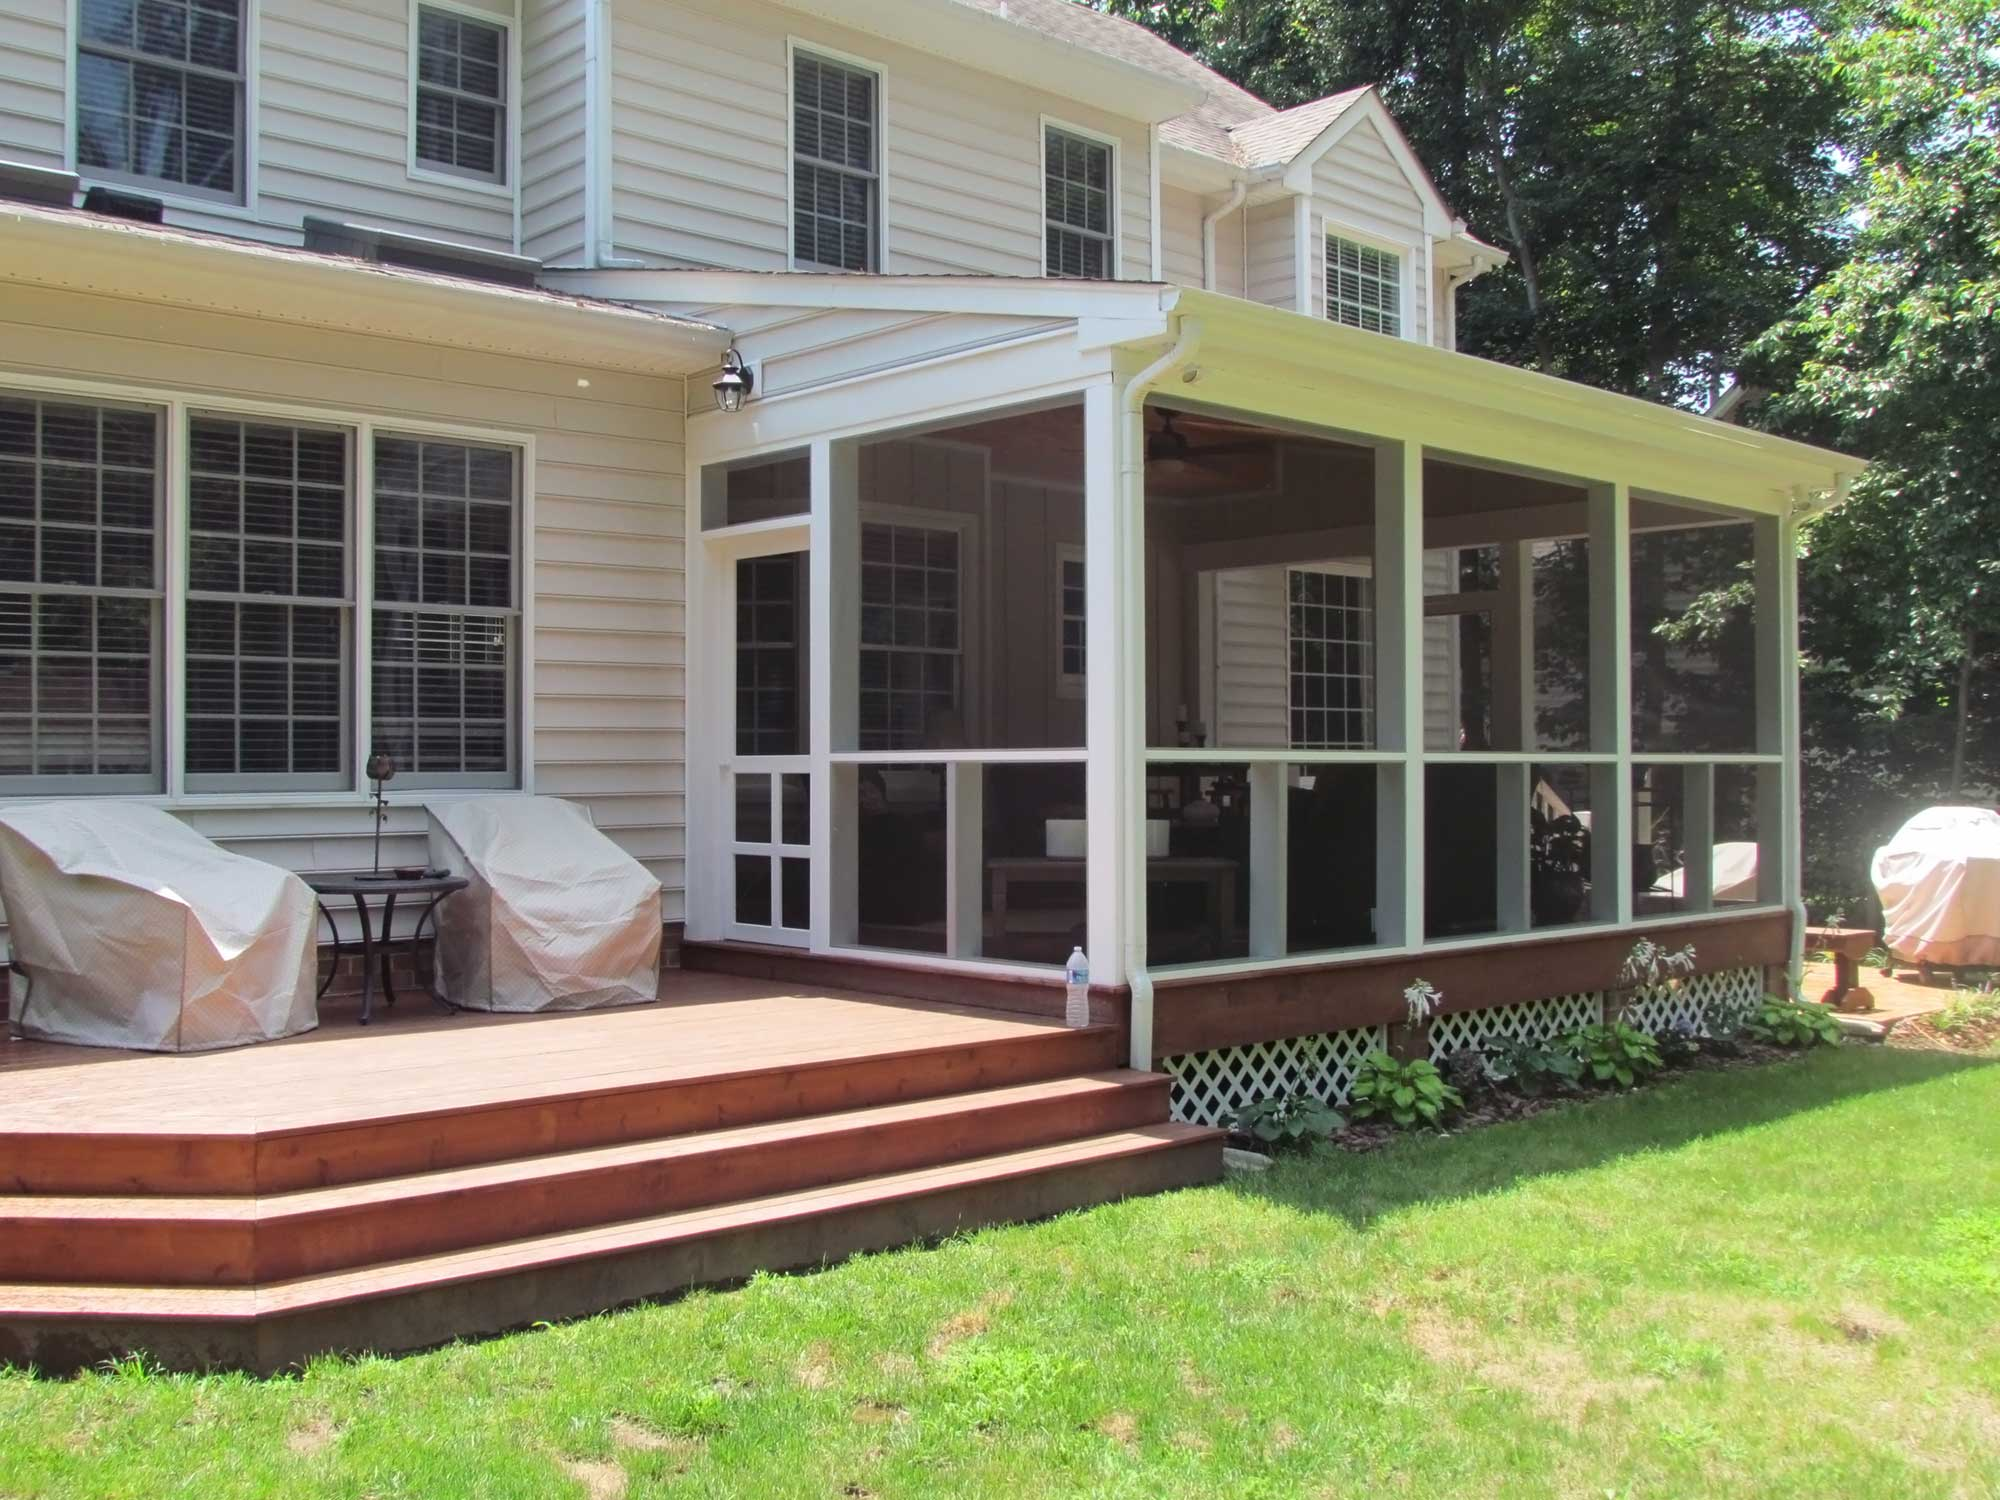 Covered porch in midlothian va rva remodeling llc for House with covered porch